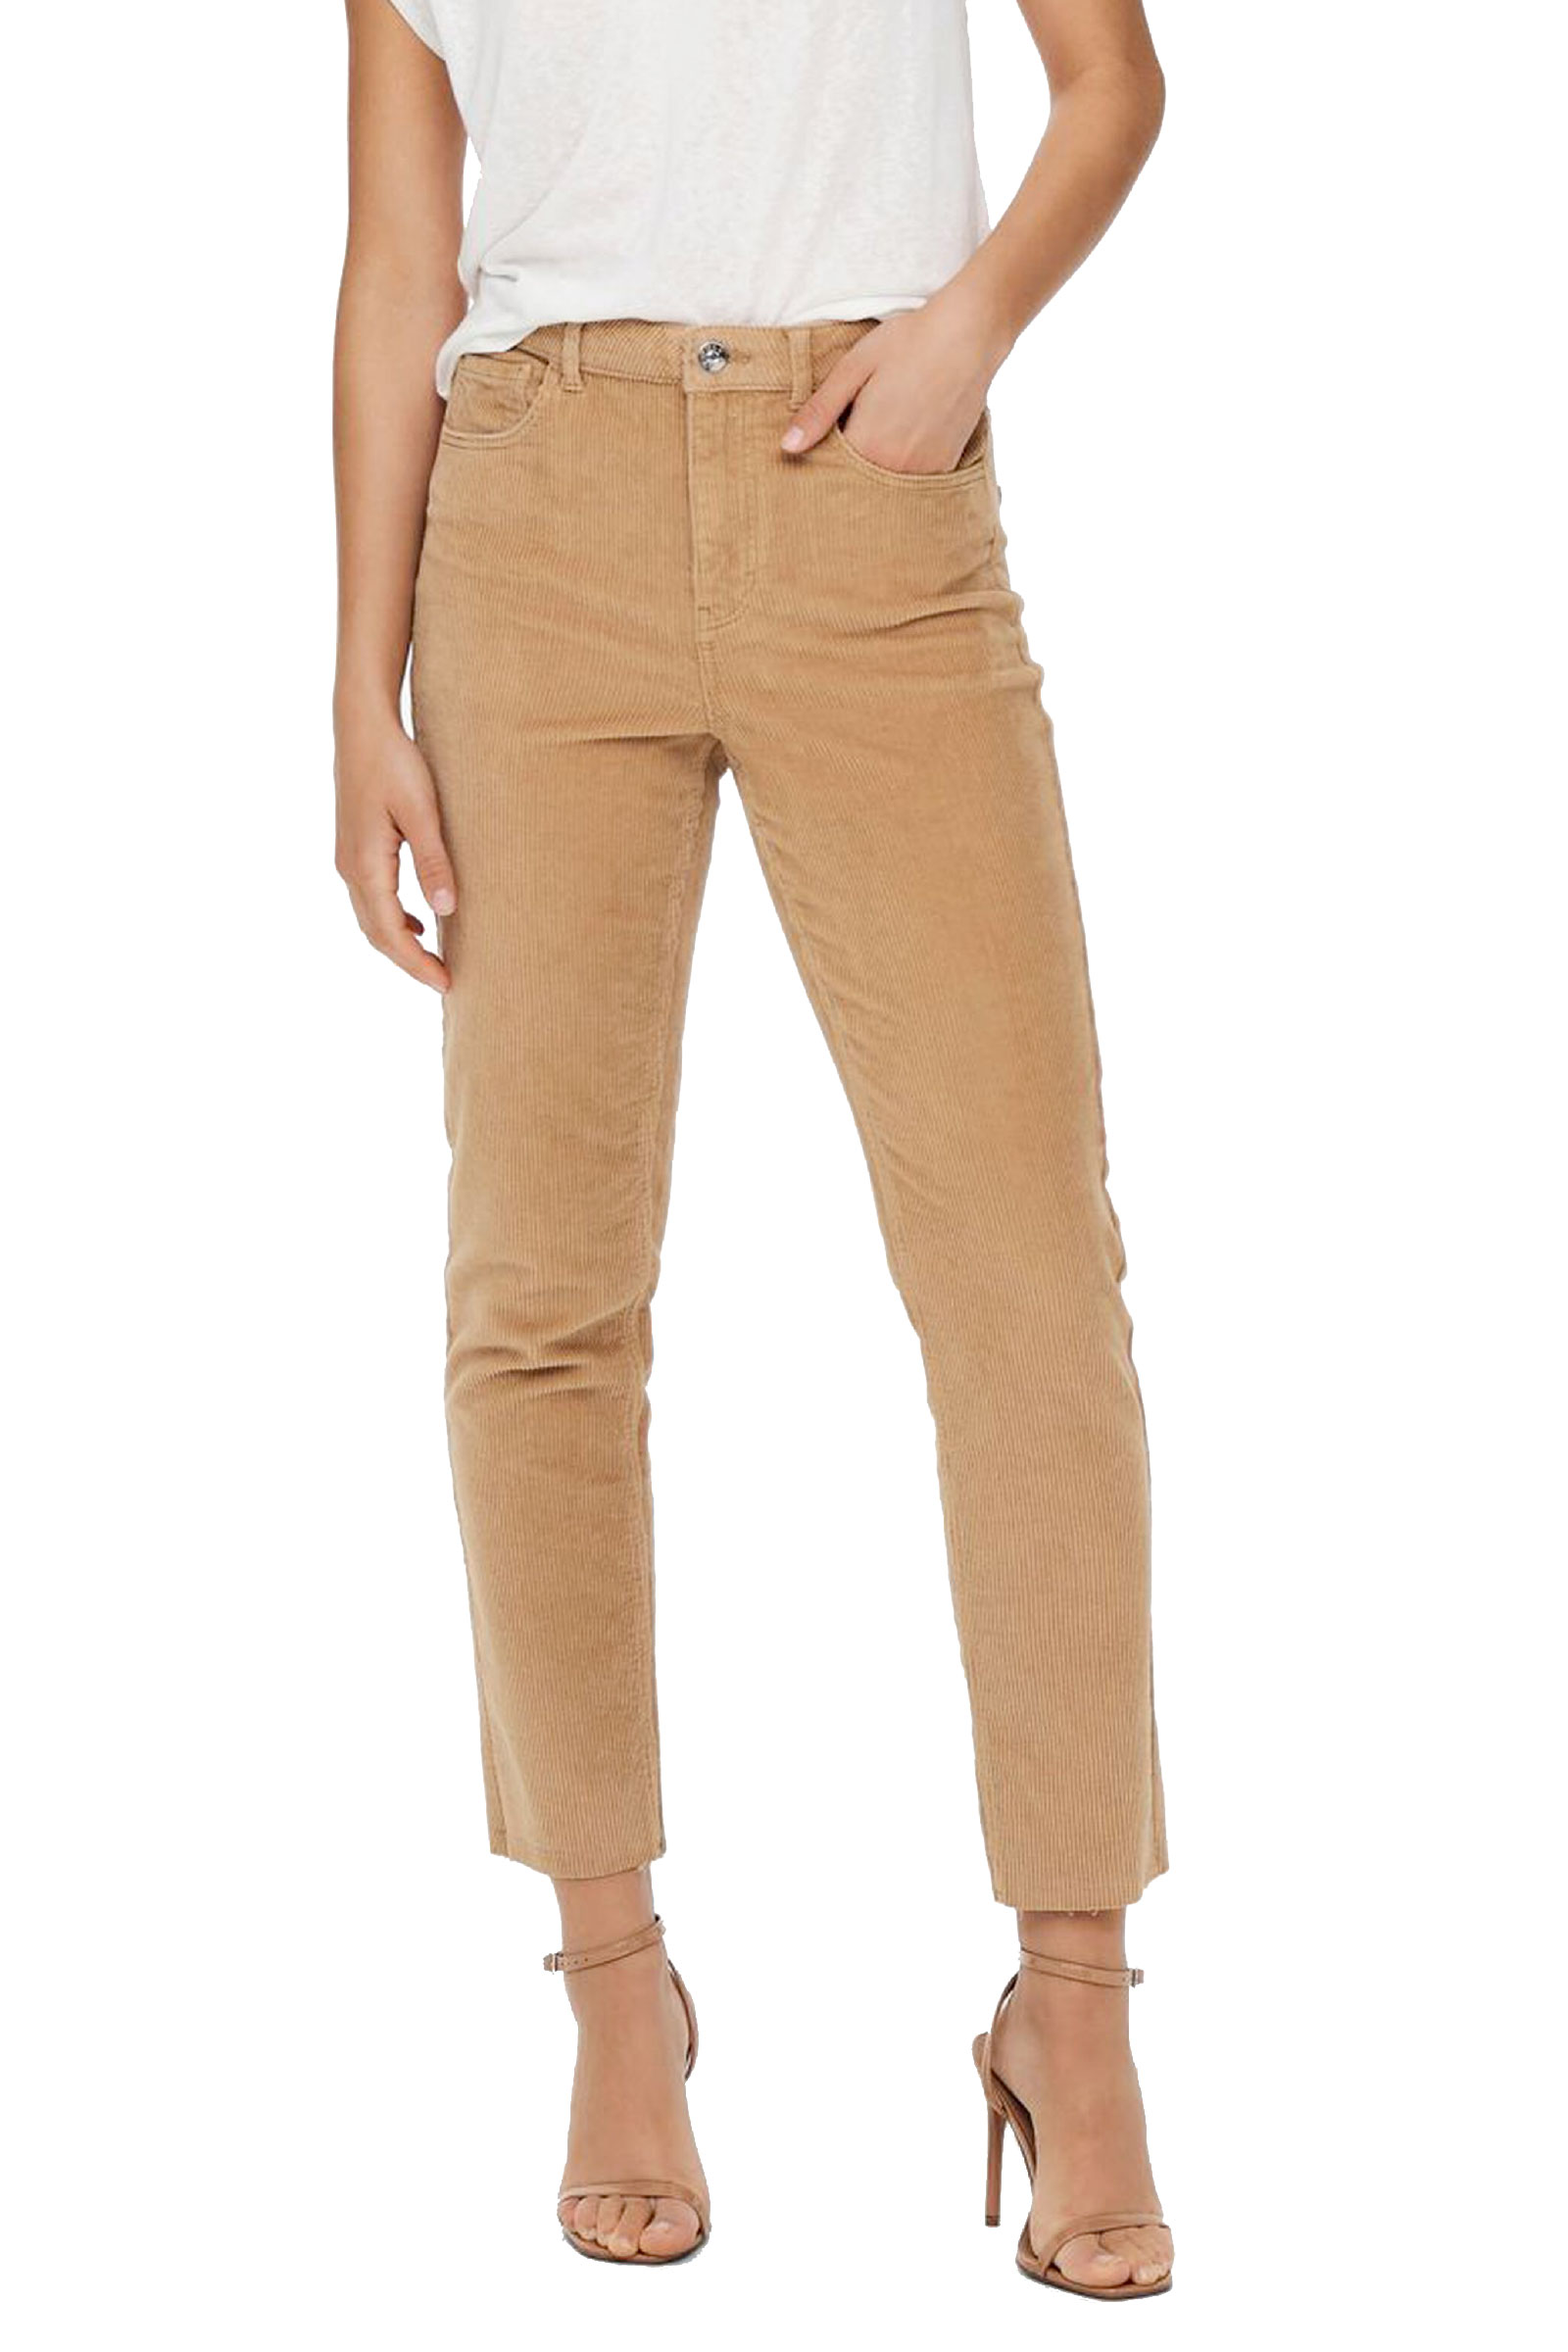 ONLY   Trousers   15195424Tannin